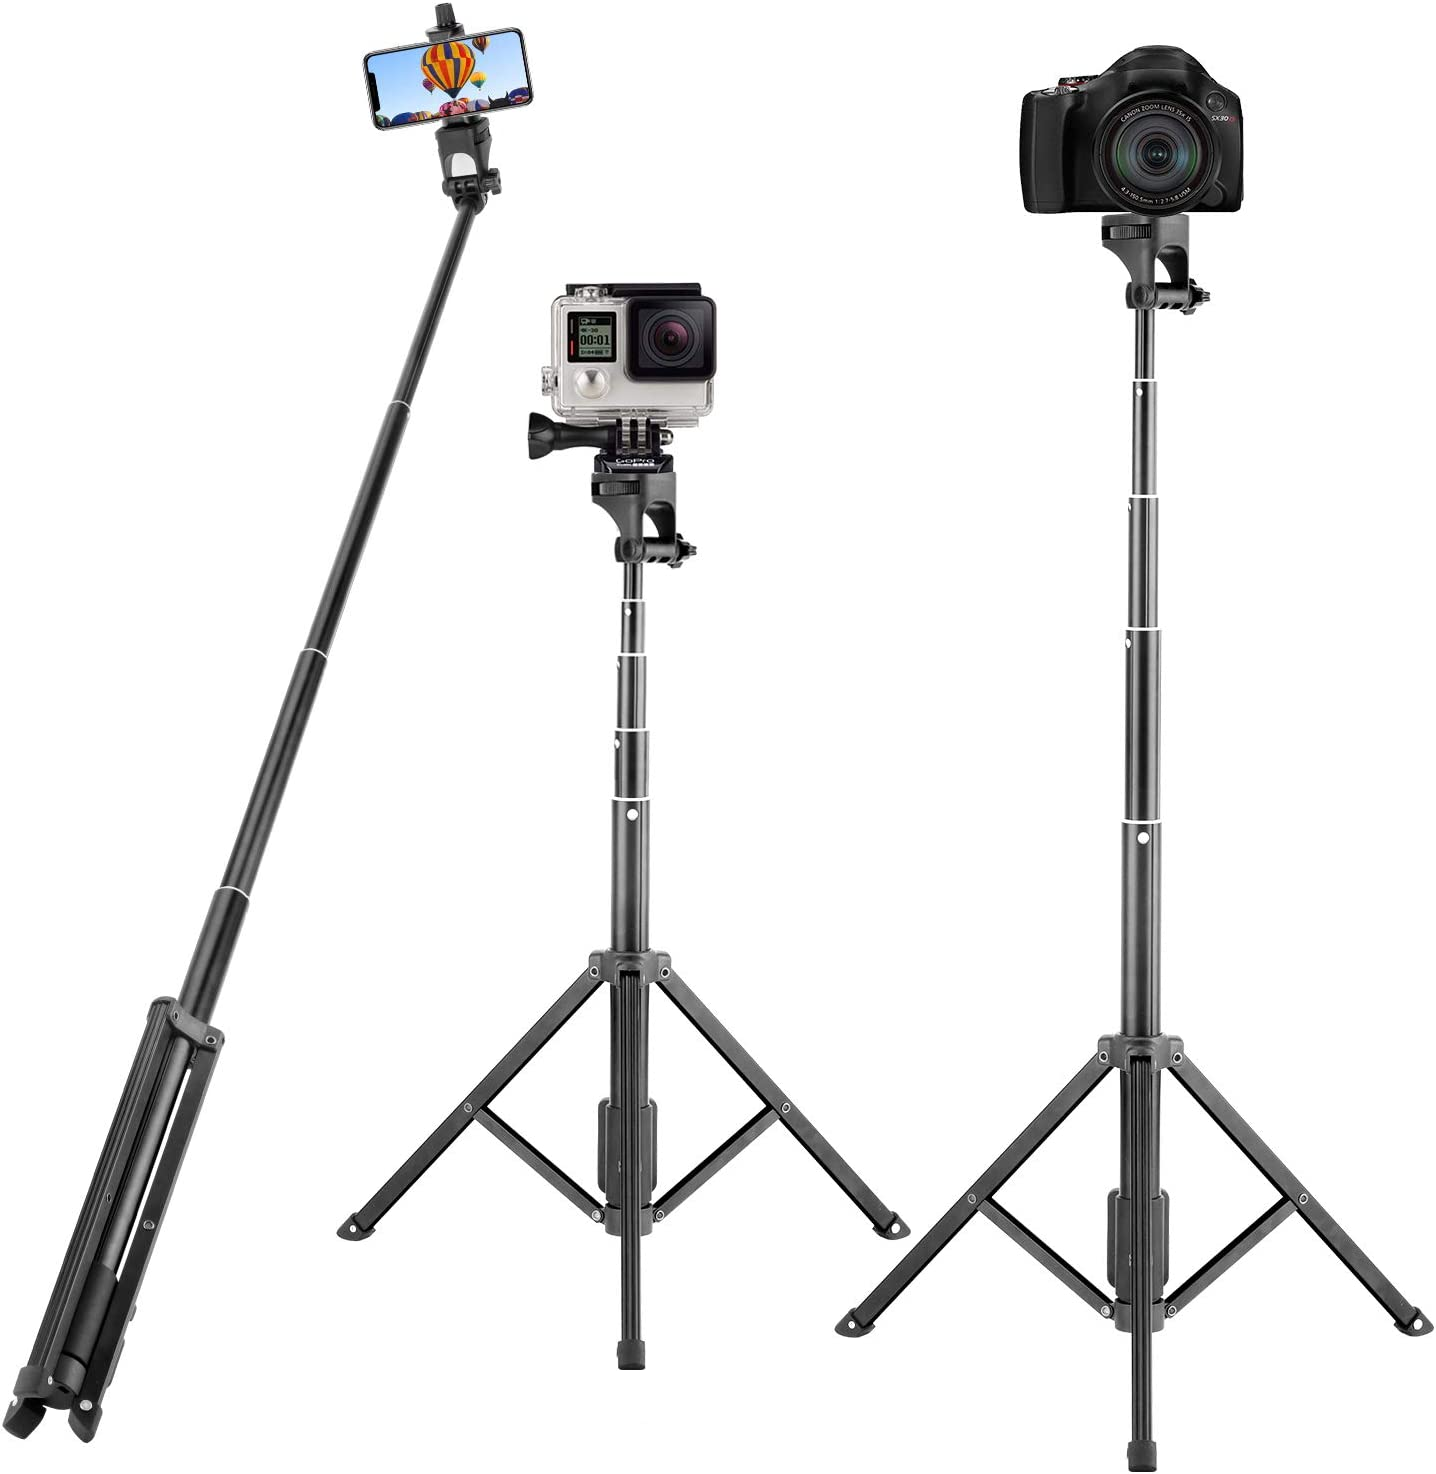 Selfie Stick Tripod, Eocean 54 Inch Extendable Selfie Stick Stand Camera Tripod for Cellphone and Gopro, Compatible with iPhone Xs/Xr/Xs Max/X/8/8Plus/7/Galaxy Note 9/S9/Huawei/Google/Xiaomi Android